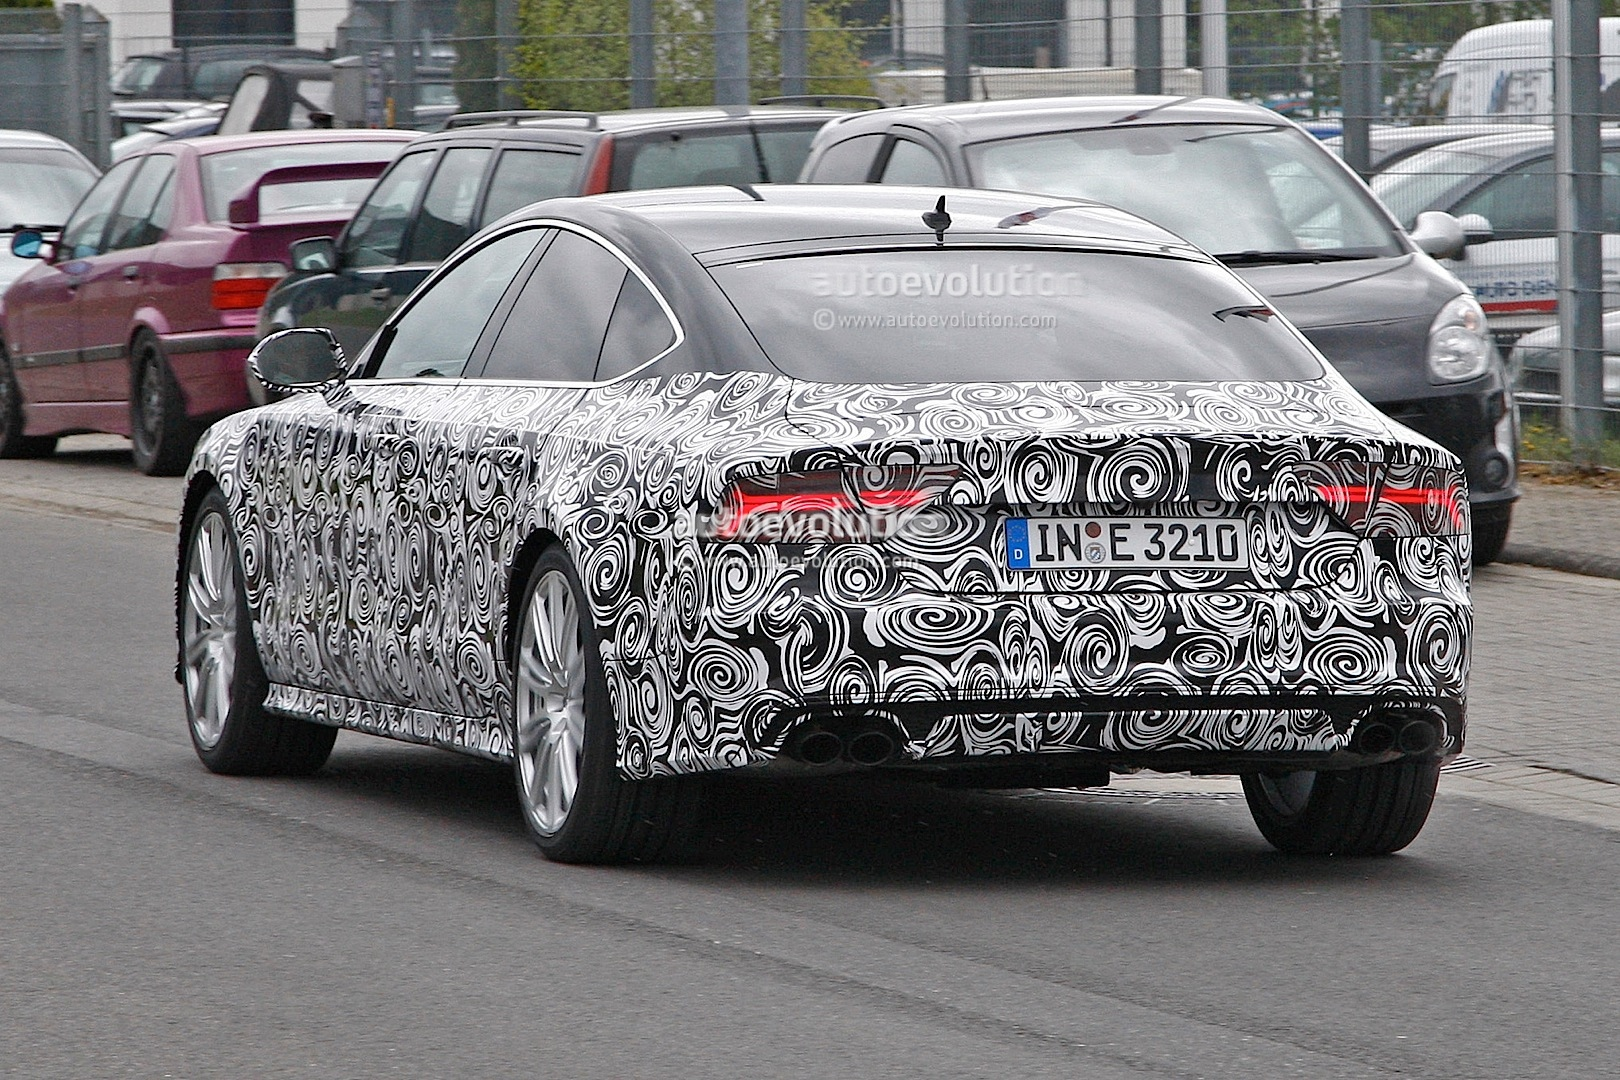 2014 - [Audi] A7 & S7 Sportback Restylée - Page 3 Spyshots-2015-audi-s7-facelift-has-a-new-grille-and-headlights_5